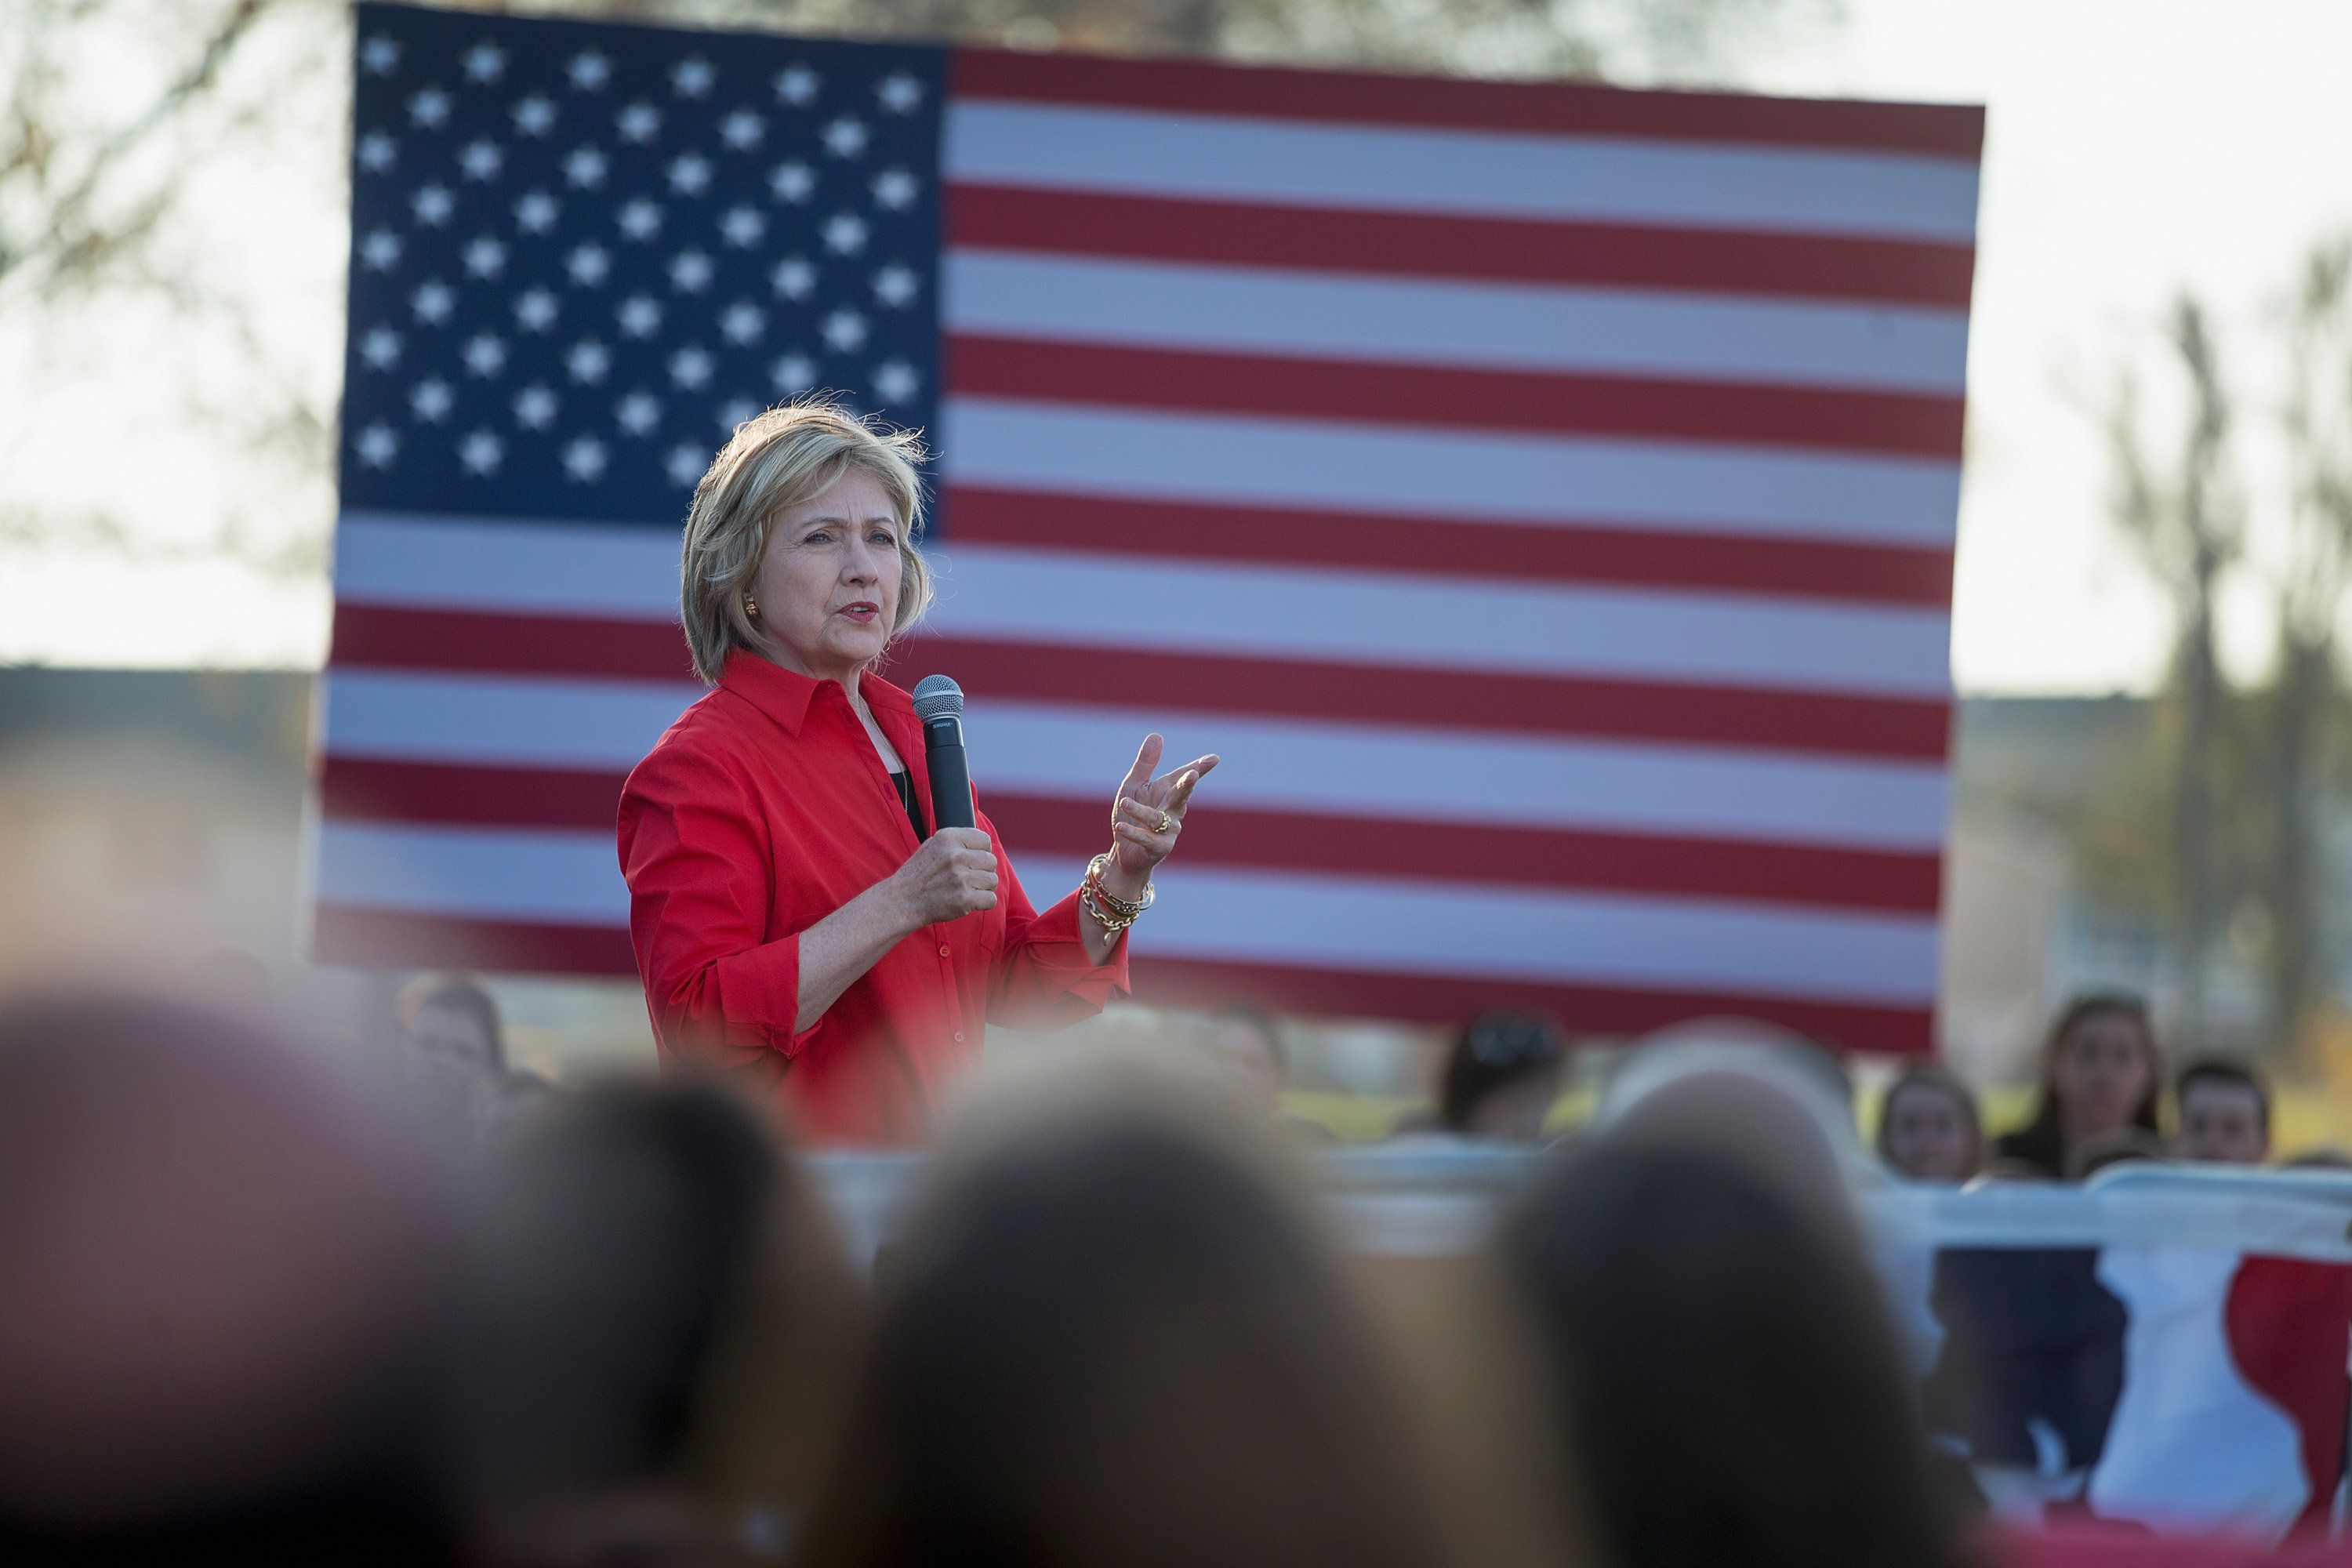 Hillary Clinton wants marijuana to be classified as a less dangerous substance.